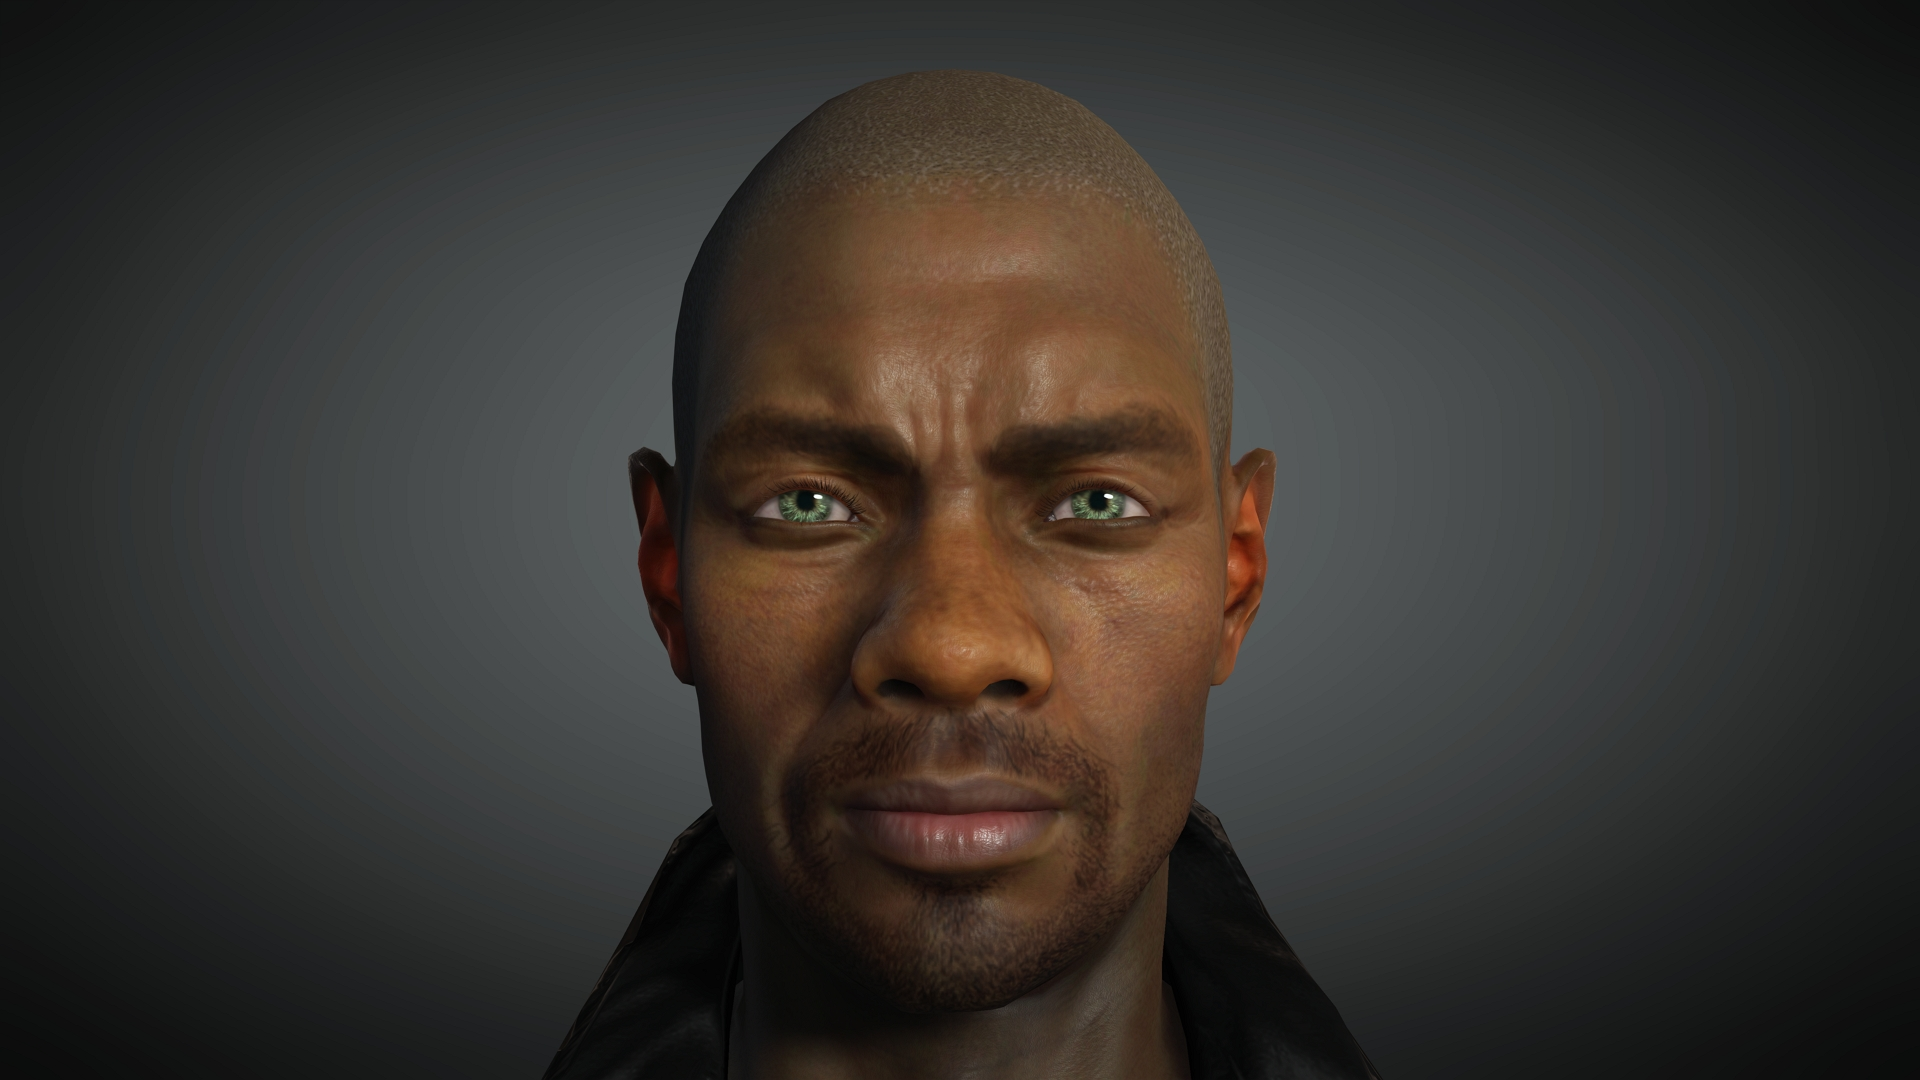 Your photorealistic 3D avatar from a photo